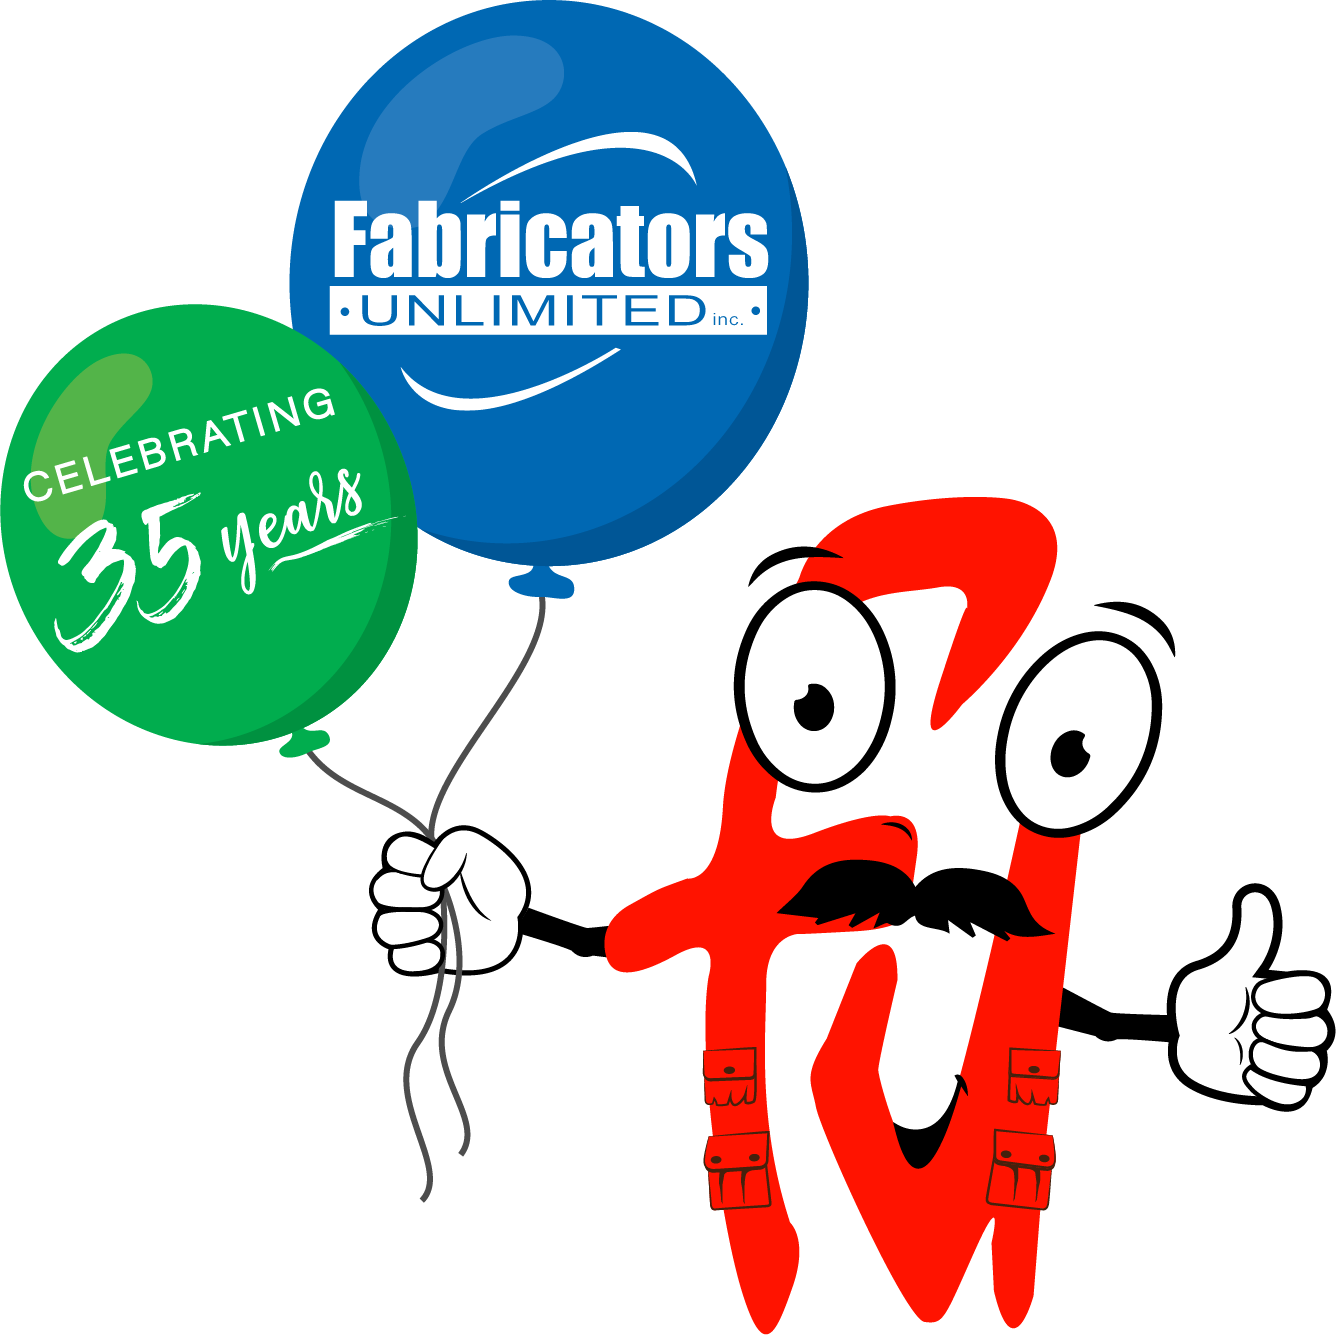 Fabricators Unlimited